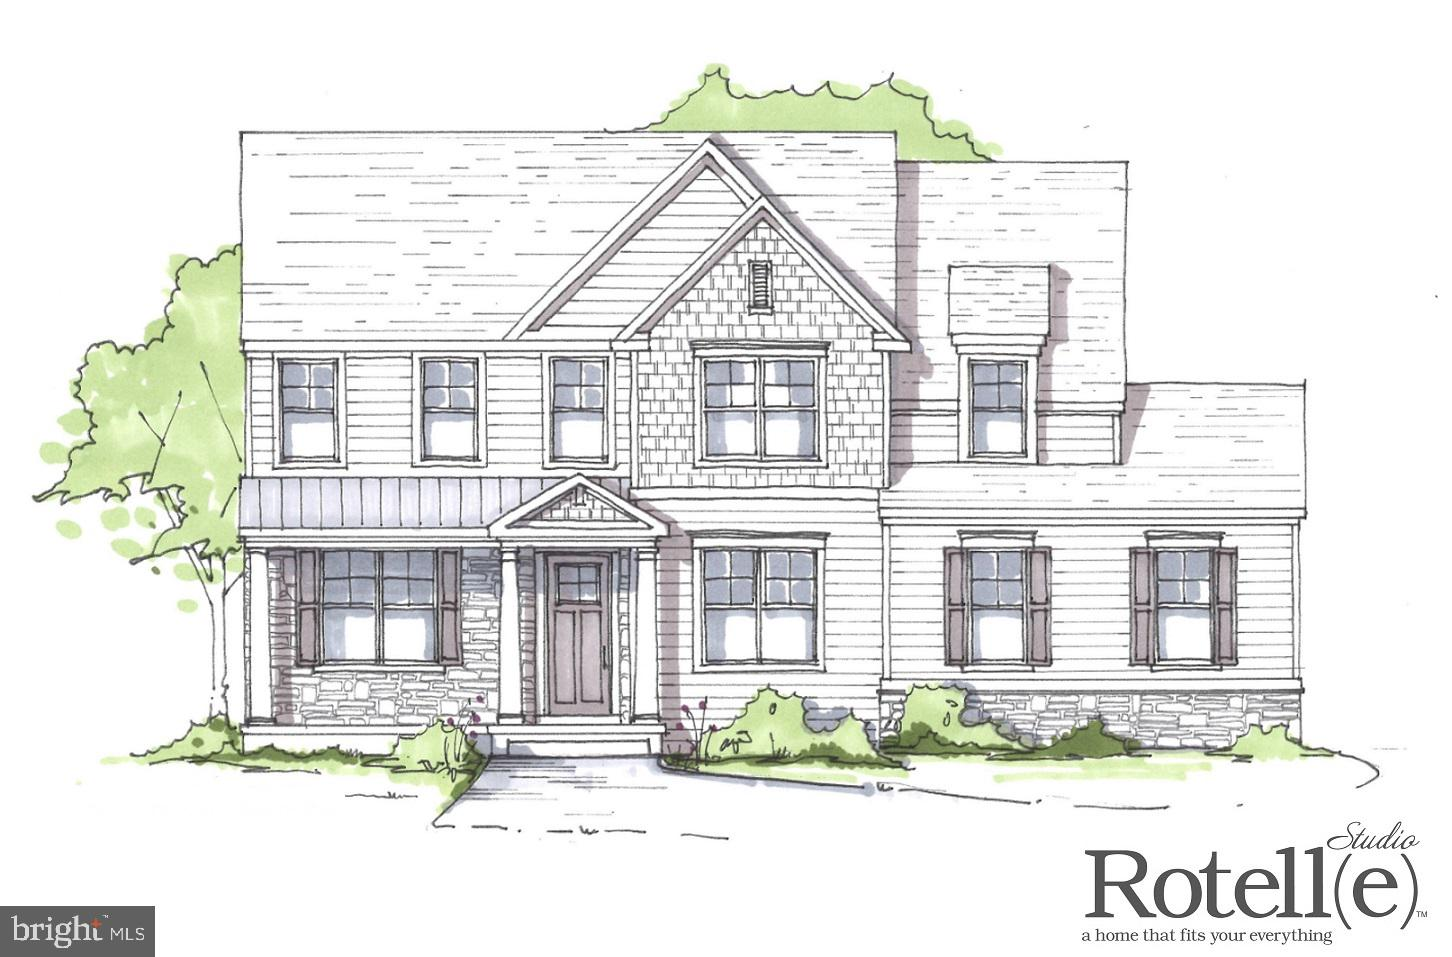 """1.3 acre wooded lot on secluded road in Owen J Roberts SD with your choice of homes to be built by Rotell(e) Homes. For more than 30 years, family-owned and operated Rotell(e) development company has been one of Pennsylvania's premier home builders and environmentally responsible land developer. Make an appointment to visit the studio to take a look at all of the various house plans that may be available for this lot. They offer homes with packages that include stainless steel appliances, granite countertops, and oak treads with painted pine risers. *Please note: pictures show options not included in the listed sales price or as a standard. Listing reflects price of the transitions in the (e) + series This lot is at the end of a dead end road and is surrounded by large tracts of wooded land. If you are looking for privacy, this will more than meet your needs. The lot is accessed by a right of way through the adjacent properties. House shown here: Main floor Great Room-17' 8"""" x 13' 3"""" Kitchen- 10' 4"""" x 11' 9"""" Flex Room- 12' 1"""" x 15' 3' Second-Floor Main Bedroom 14' x 13' 8"""" Second Bedroom- 11' 5"""" x 11' Third Bedroom- 10' 4"""" x 11"""